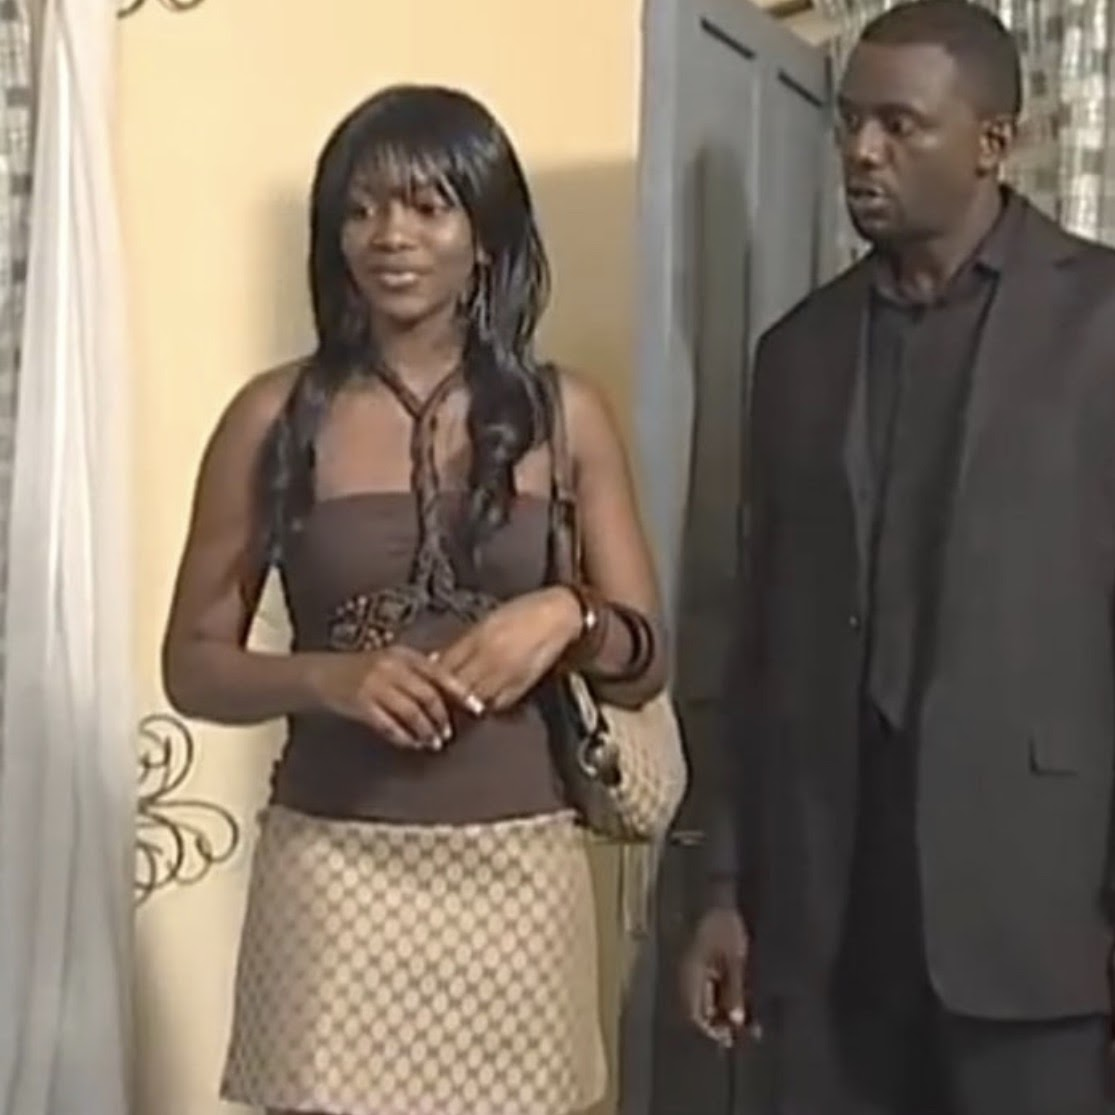 Genevieve Nnaji in Girls Cot, 2006